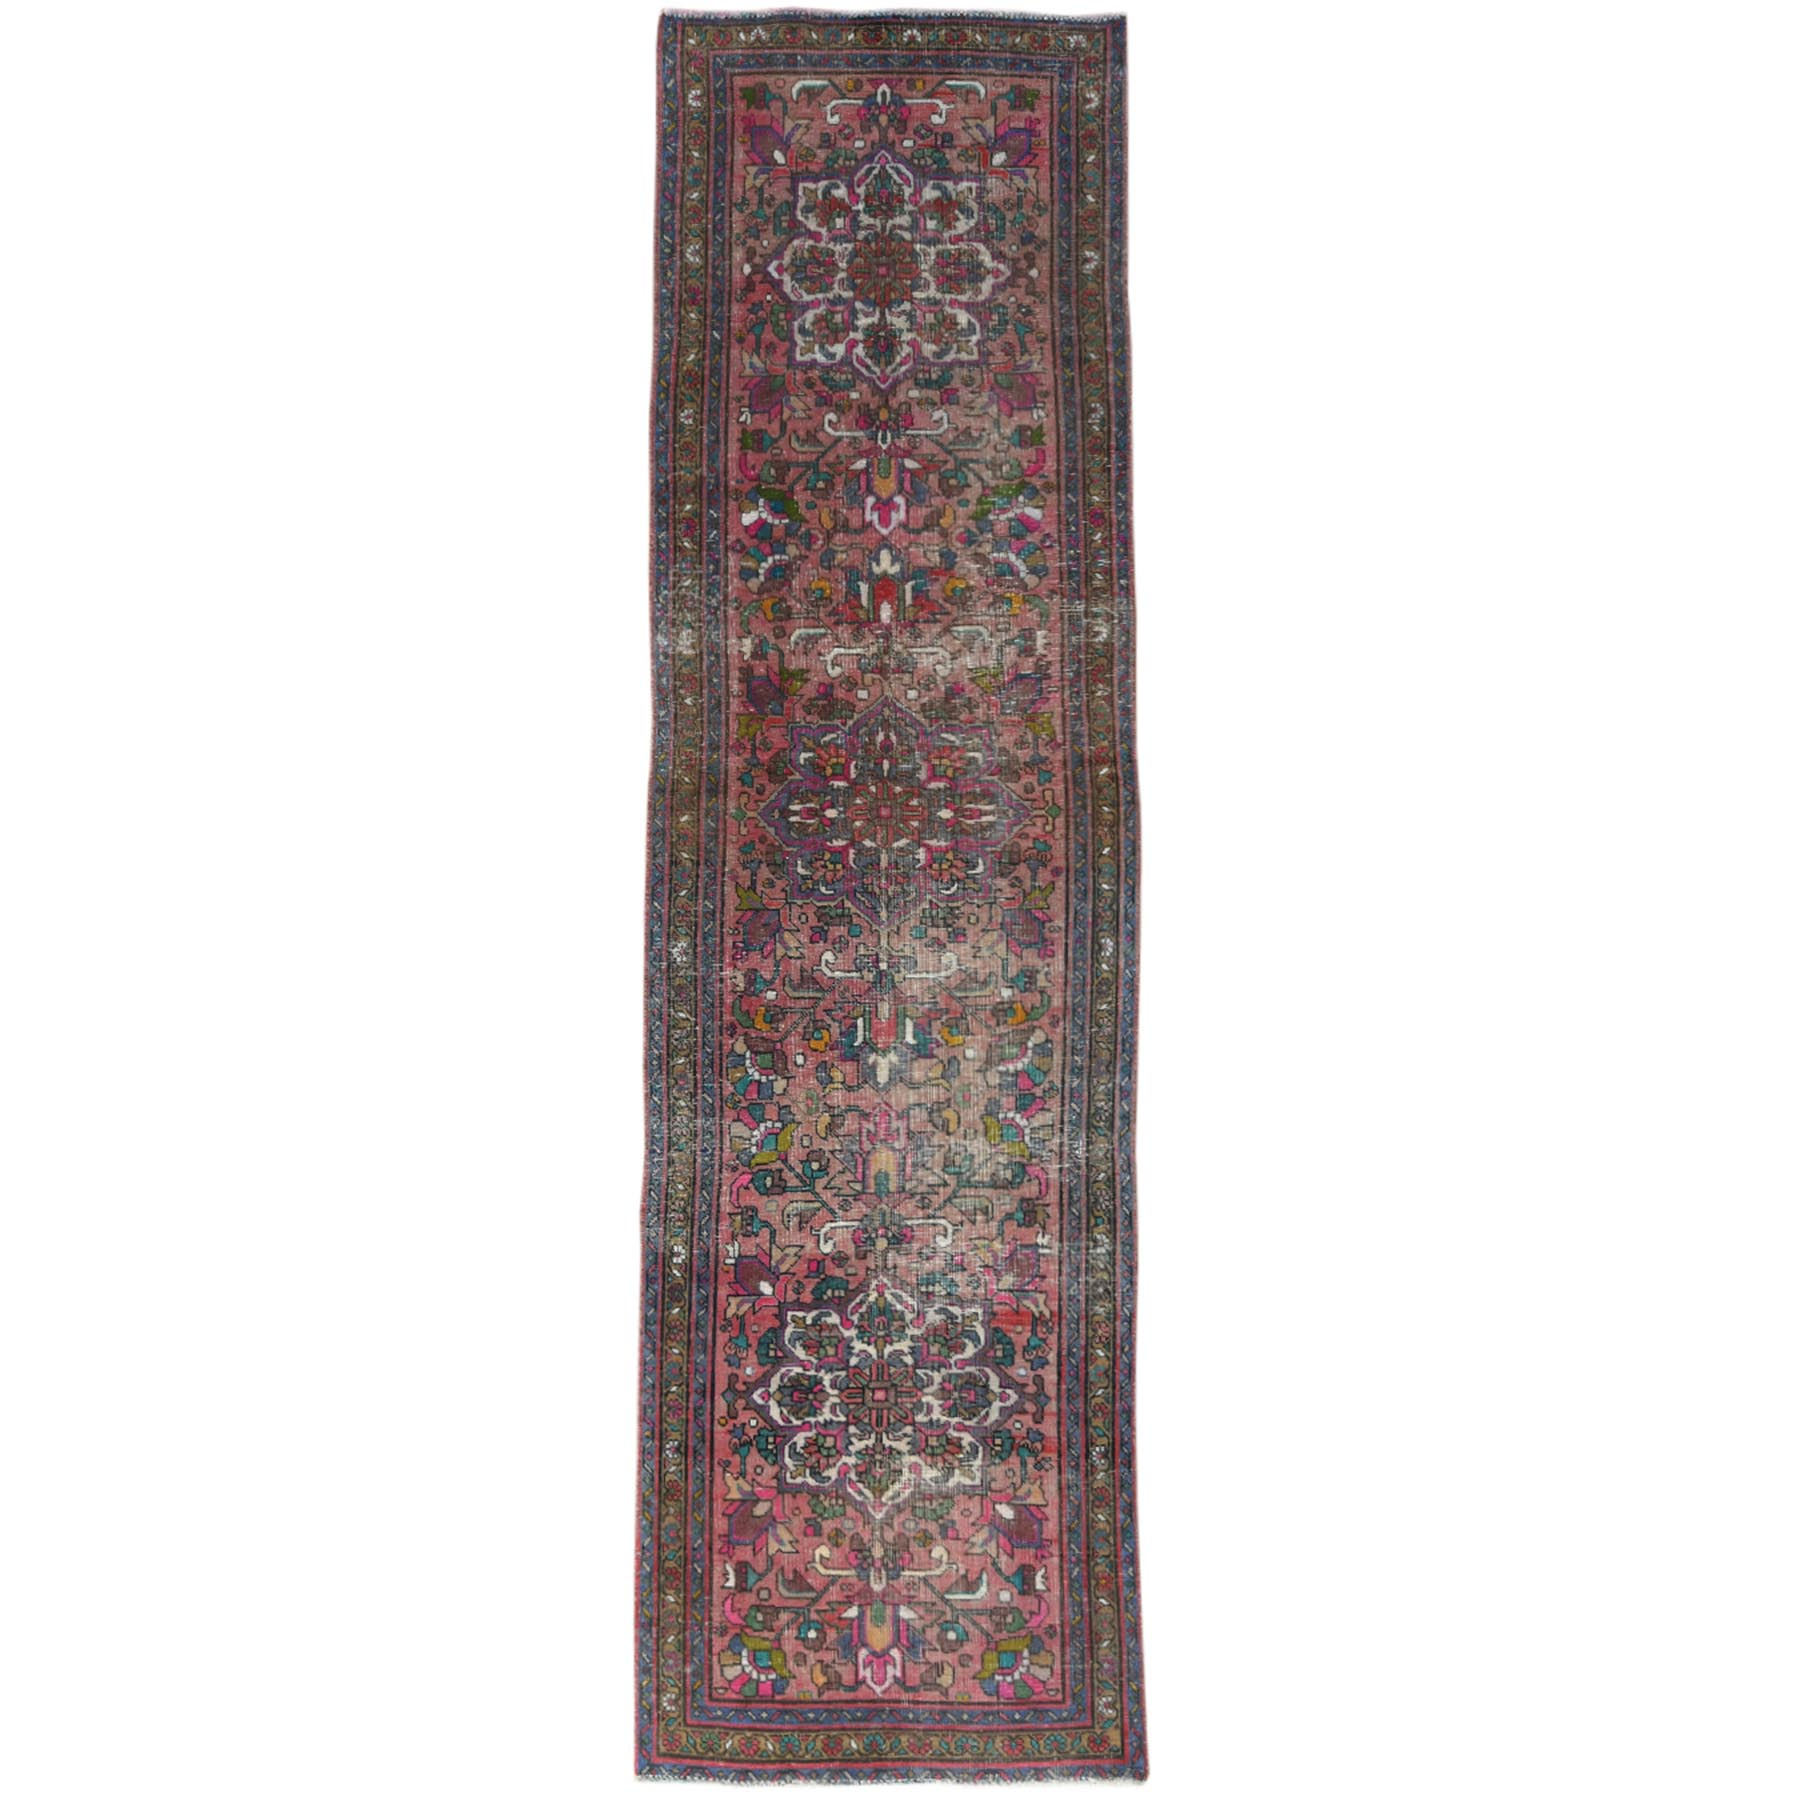 "3'1""x11'1"" Deep Red Vintage Persian Tabriz Sheared Down Pile Clean Hand Knotted Natural Wool Oriental Runner Rug"